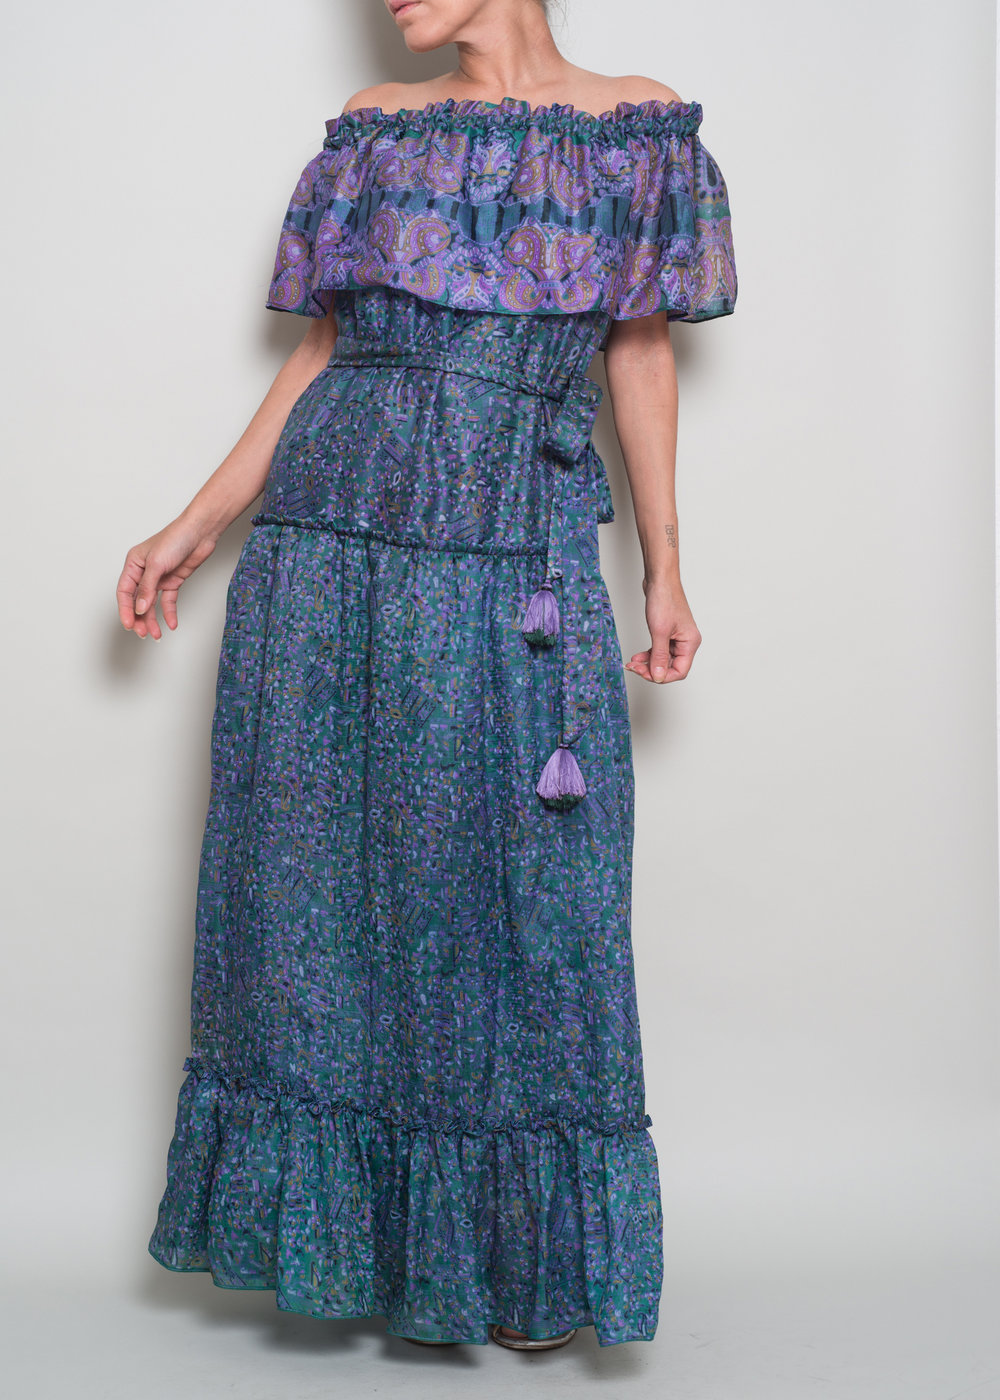 Le_Marie_Collection_silk_Dresses081.jpg